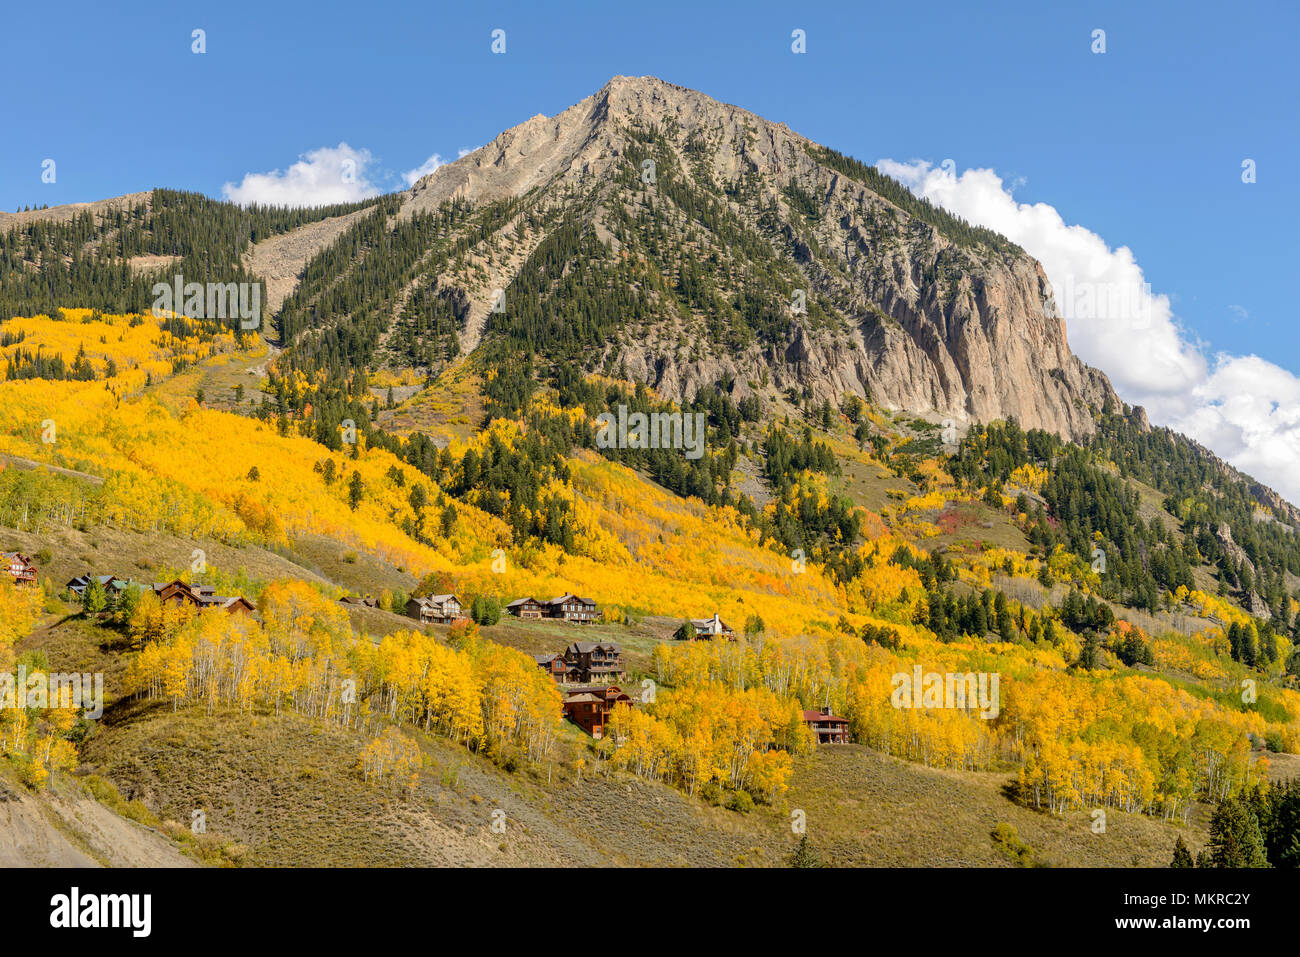 Autumn at Mount Crested Butte - Autumn view of Mount Crested Butte, Colorado, USA. - Stock Image